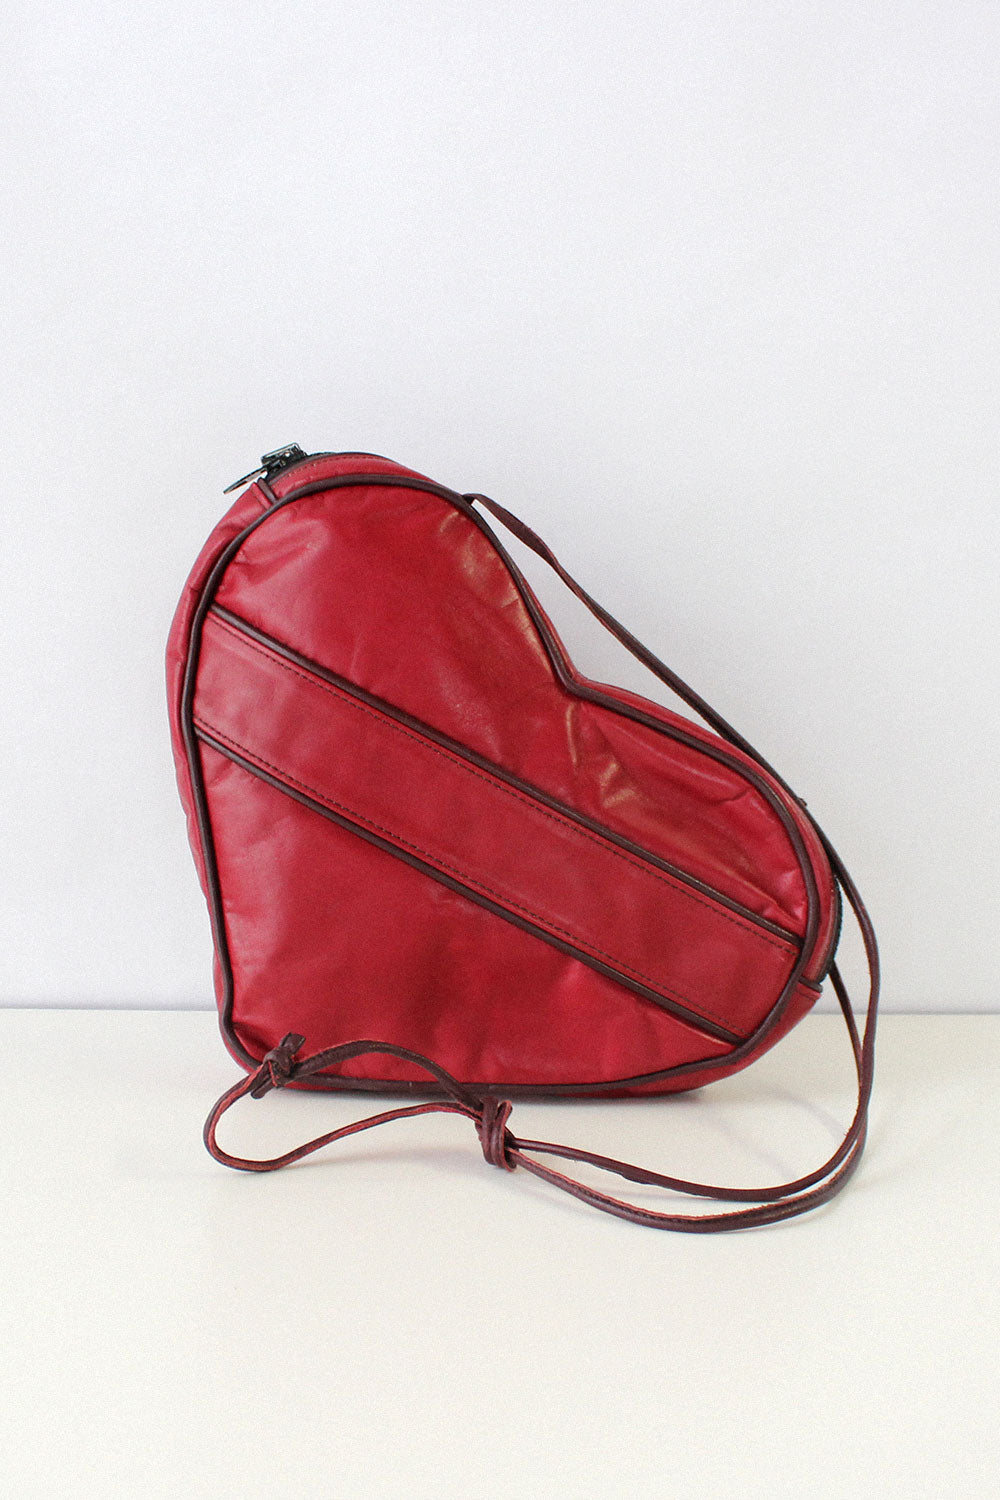 Woodstock Heart Purse